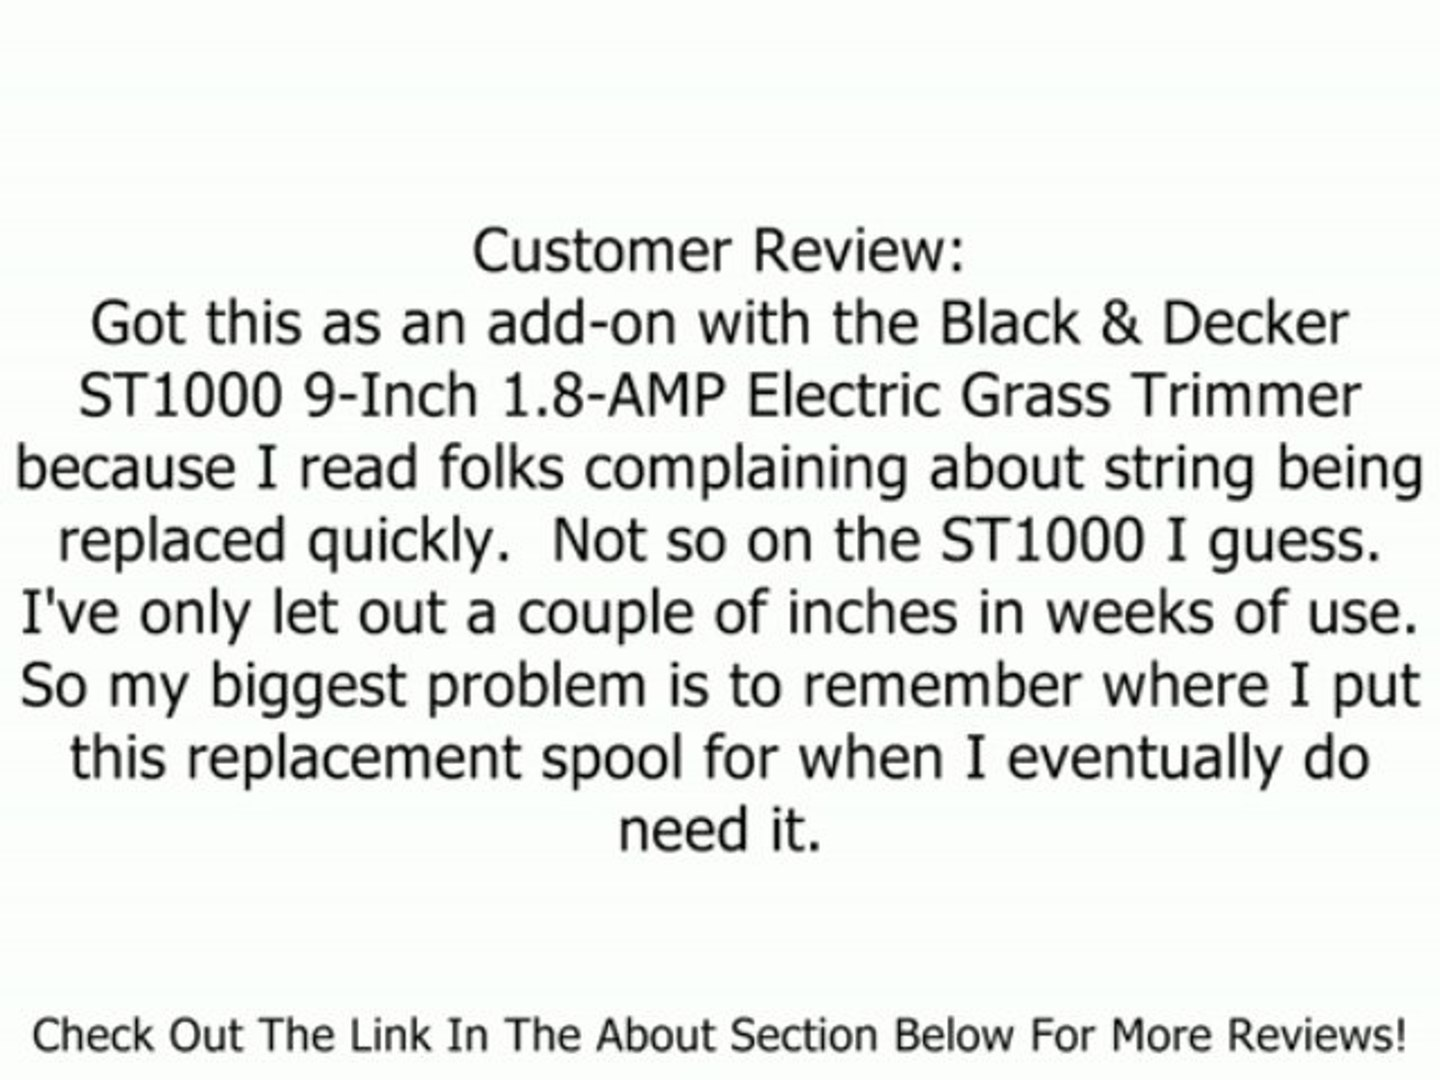 Black & Decker RS-136 String Trimmer Replacement Spool Review